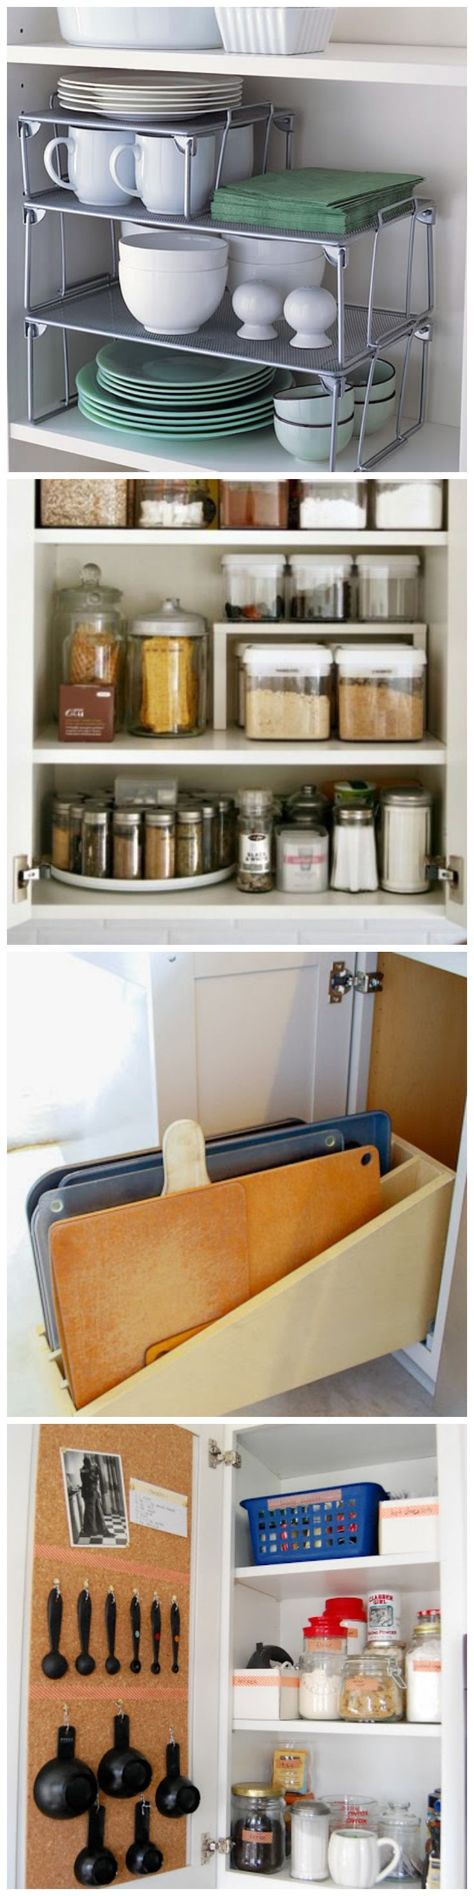 These Insanely Organized Cabinets Will Inspire Your Next Cleaning Session